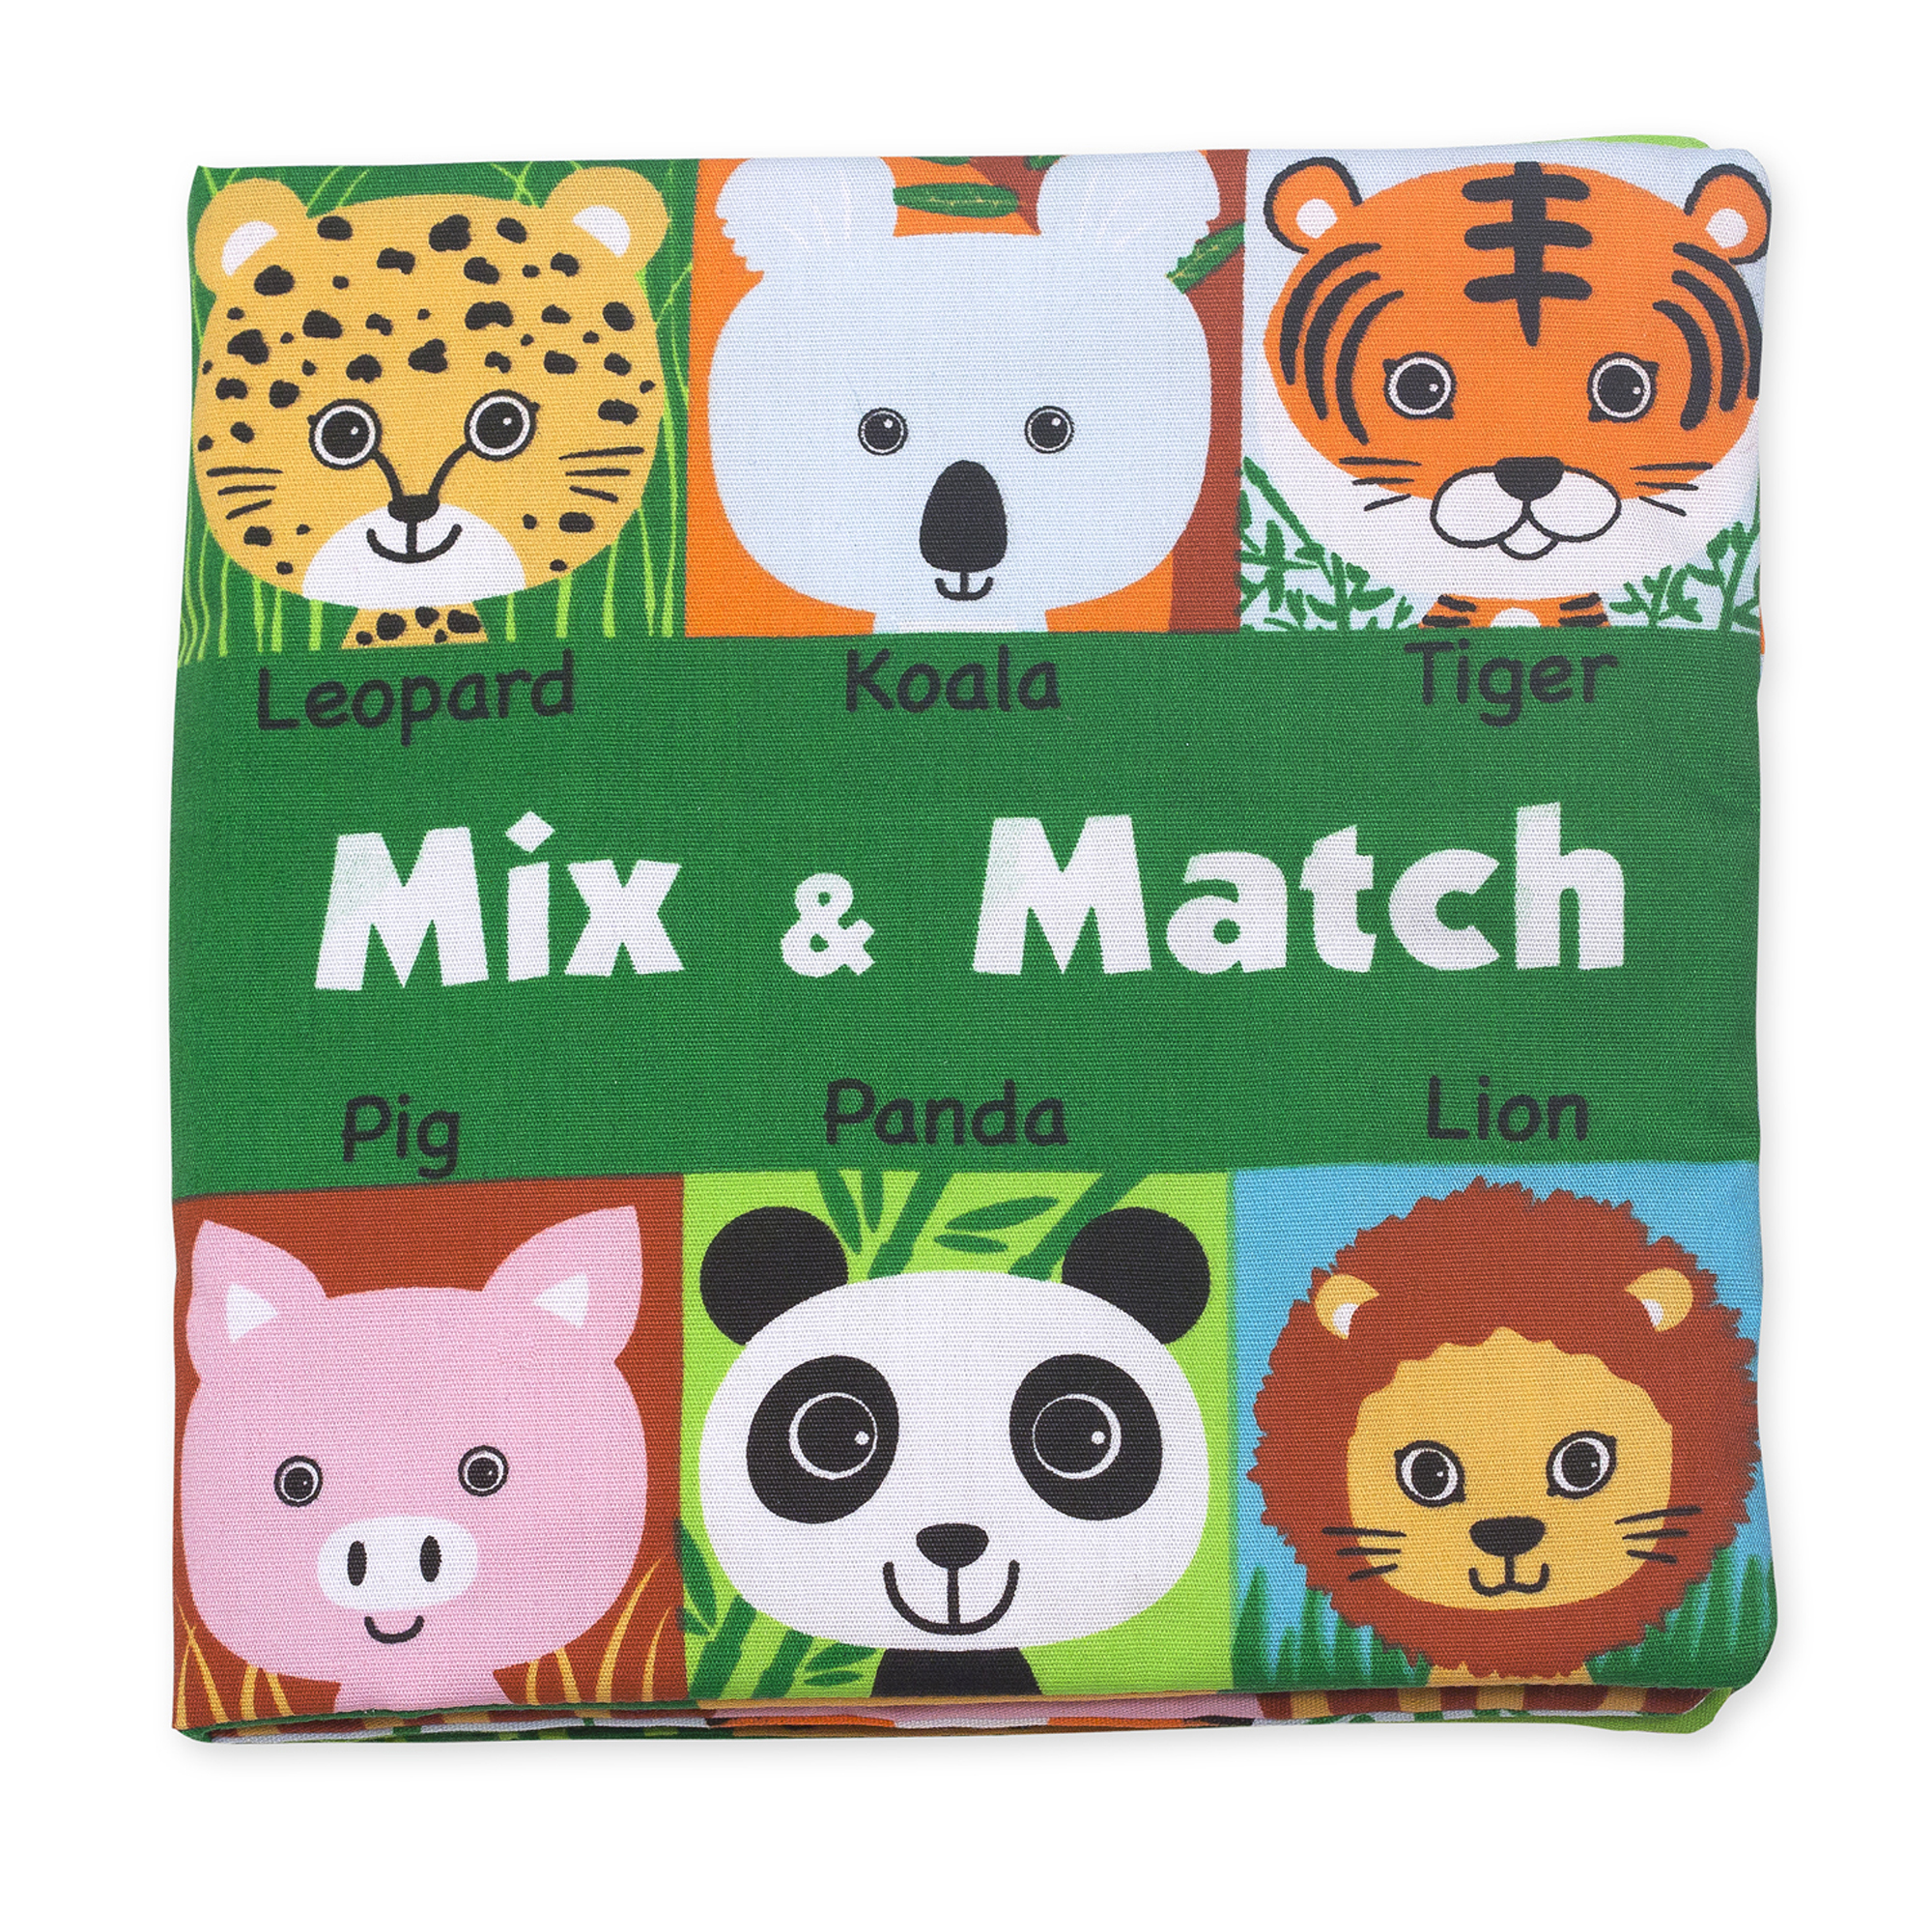 Can you find all the animal friends? Turn the crinkly flaps to build a face that matches-or create a silly creature all your own! This crinkling, lift-the-flap, mixed-up-animals cloth book from Melissa & Doug K's Kids is durably constructed to last through story time, playtime, and the washing machine, too!